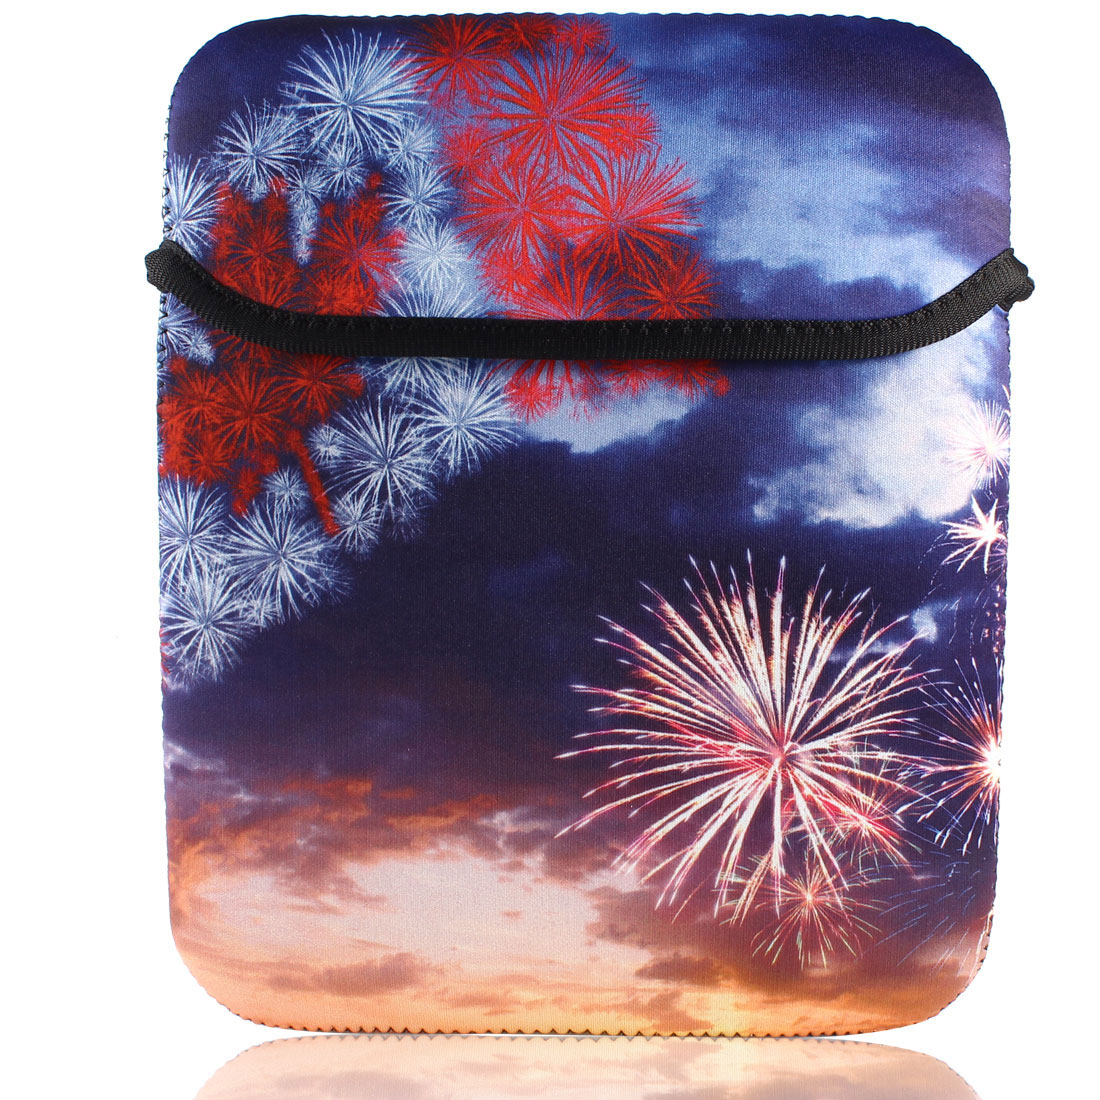 "Christmas Fireworks Sleeve Bag Pouch Case Cover for 10"" Tablet PC Laptop"